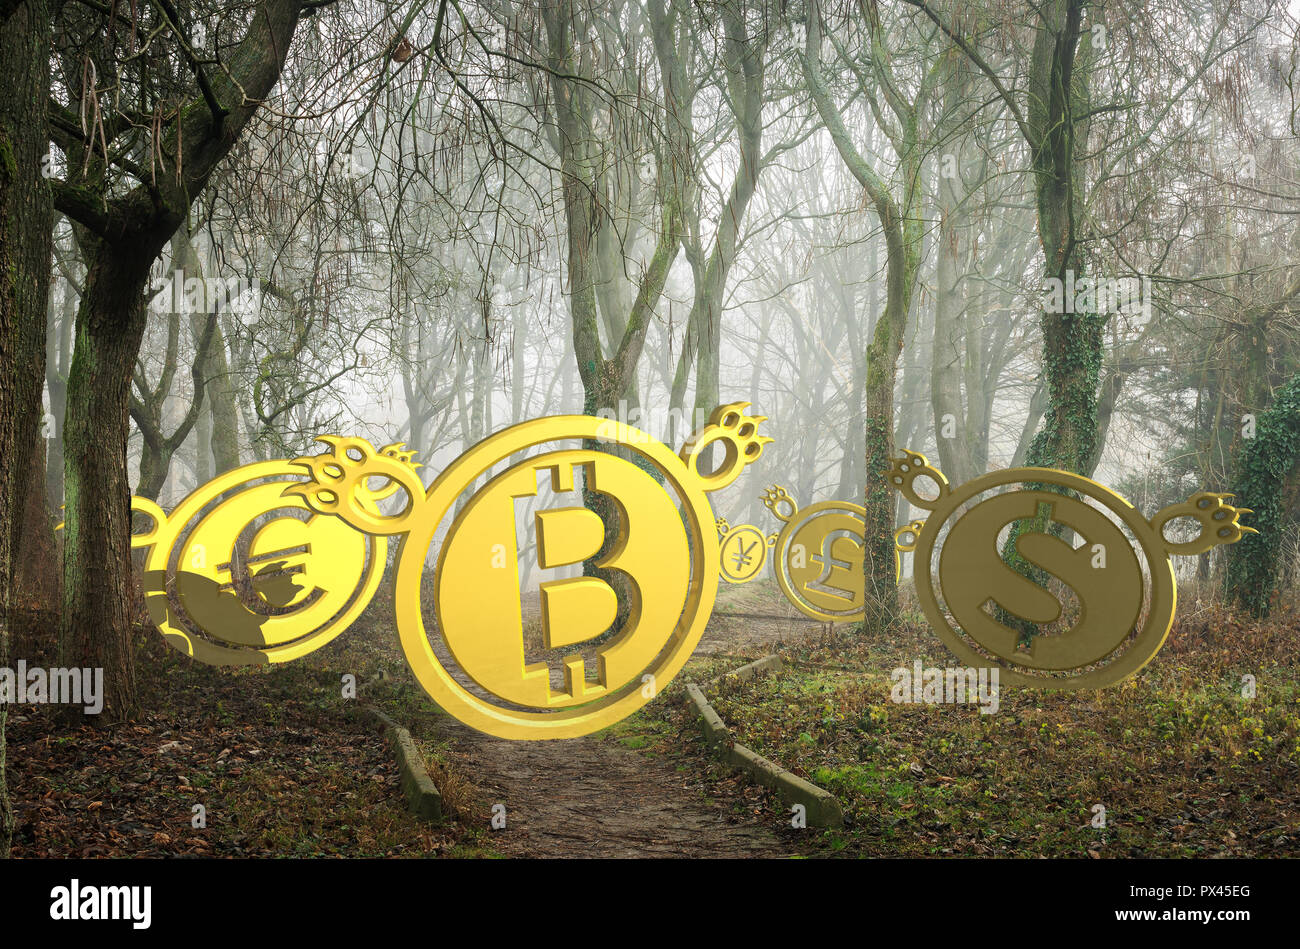 coin bears lost in foggy forest at the bottom of the valley. bearish currency descending trend. creepy deep autumn scenery. horror Halloween trading c - Stock Image